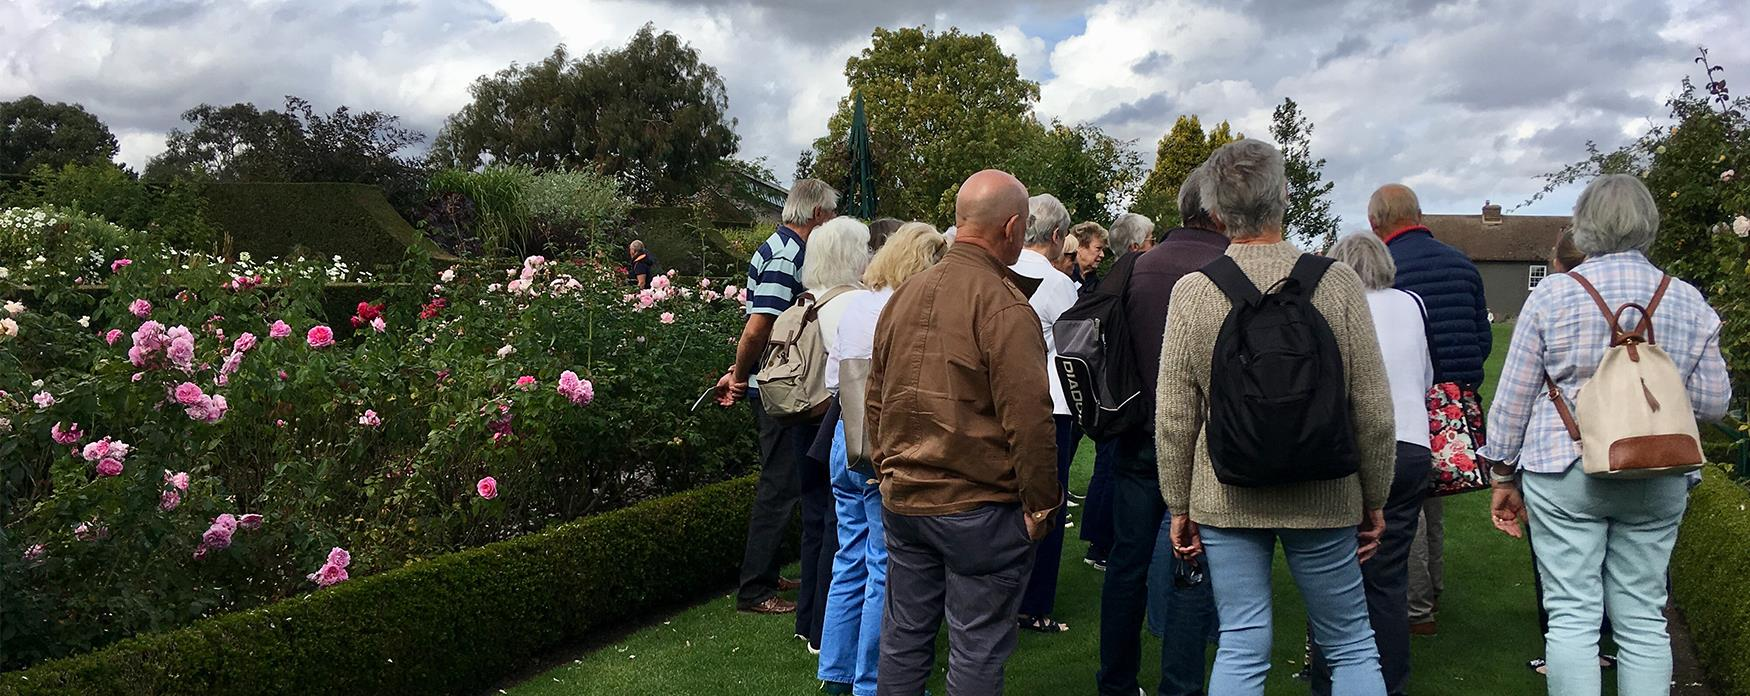 A group admiring the gardens at RHS Hyde Hall